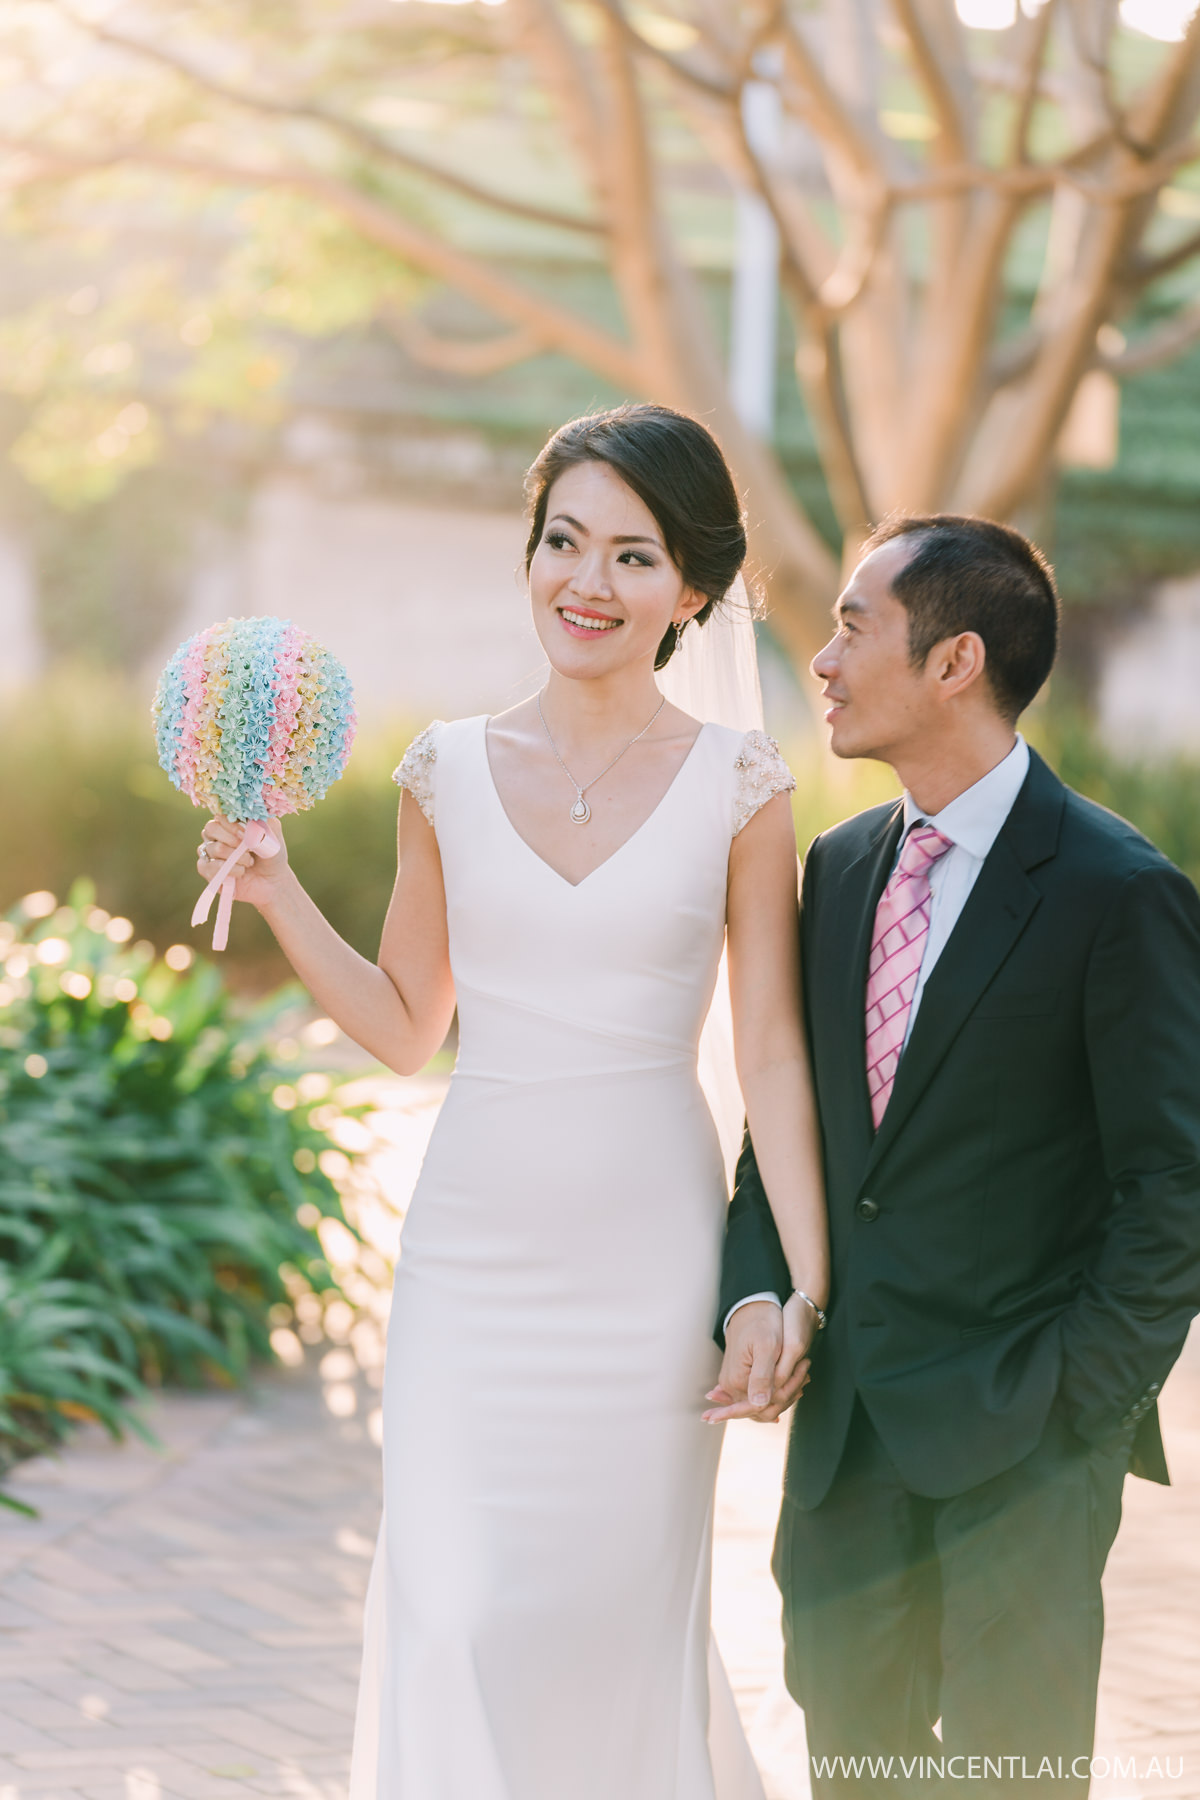 Sydney Wedding Award Winning Vincent Lai Photographer